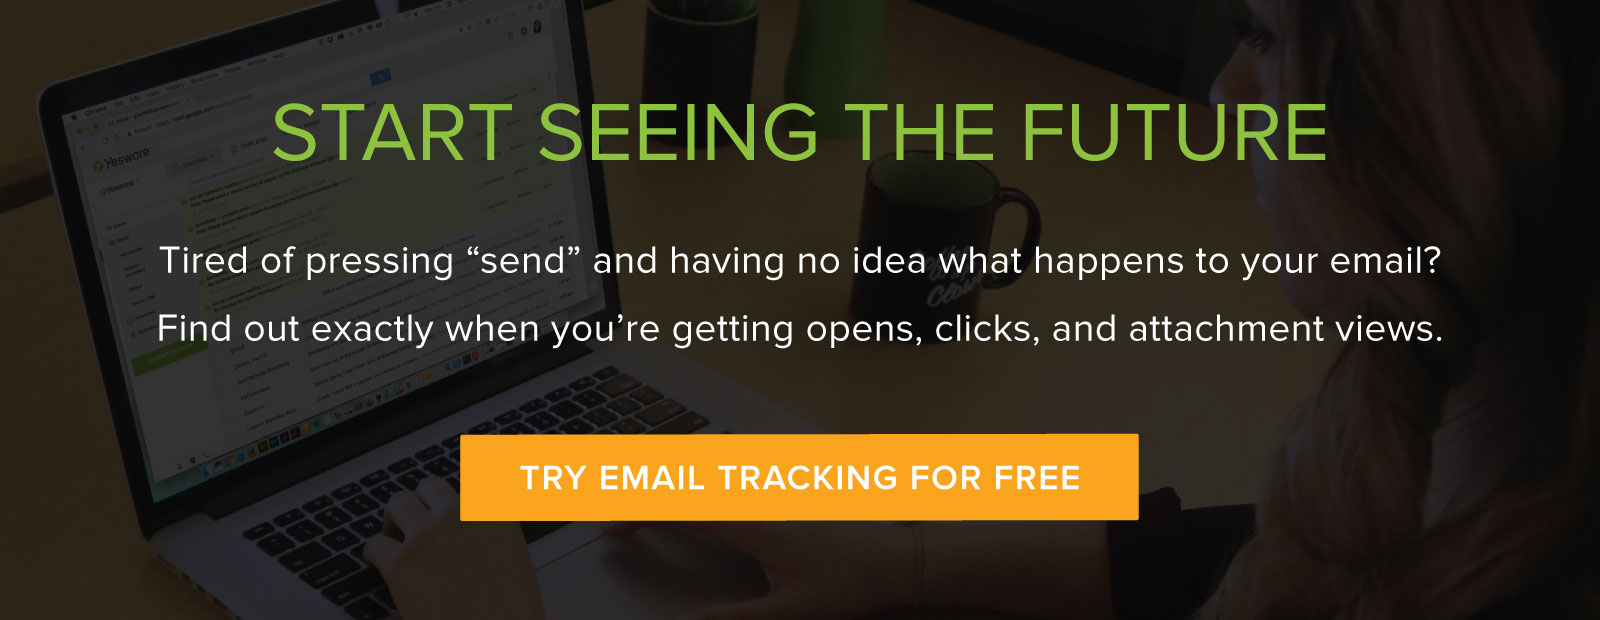 email tracking trial